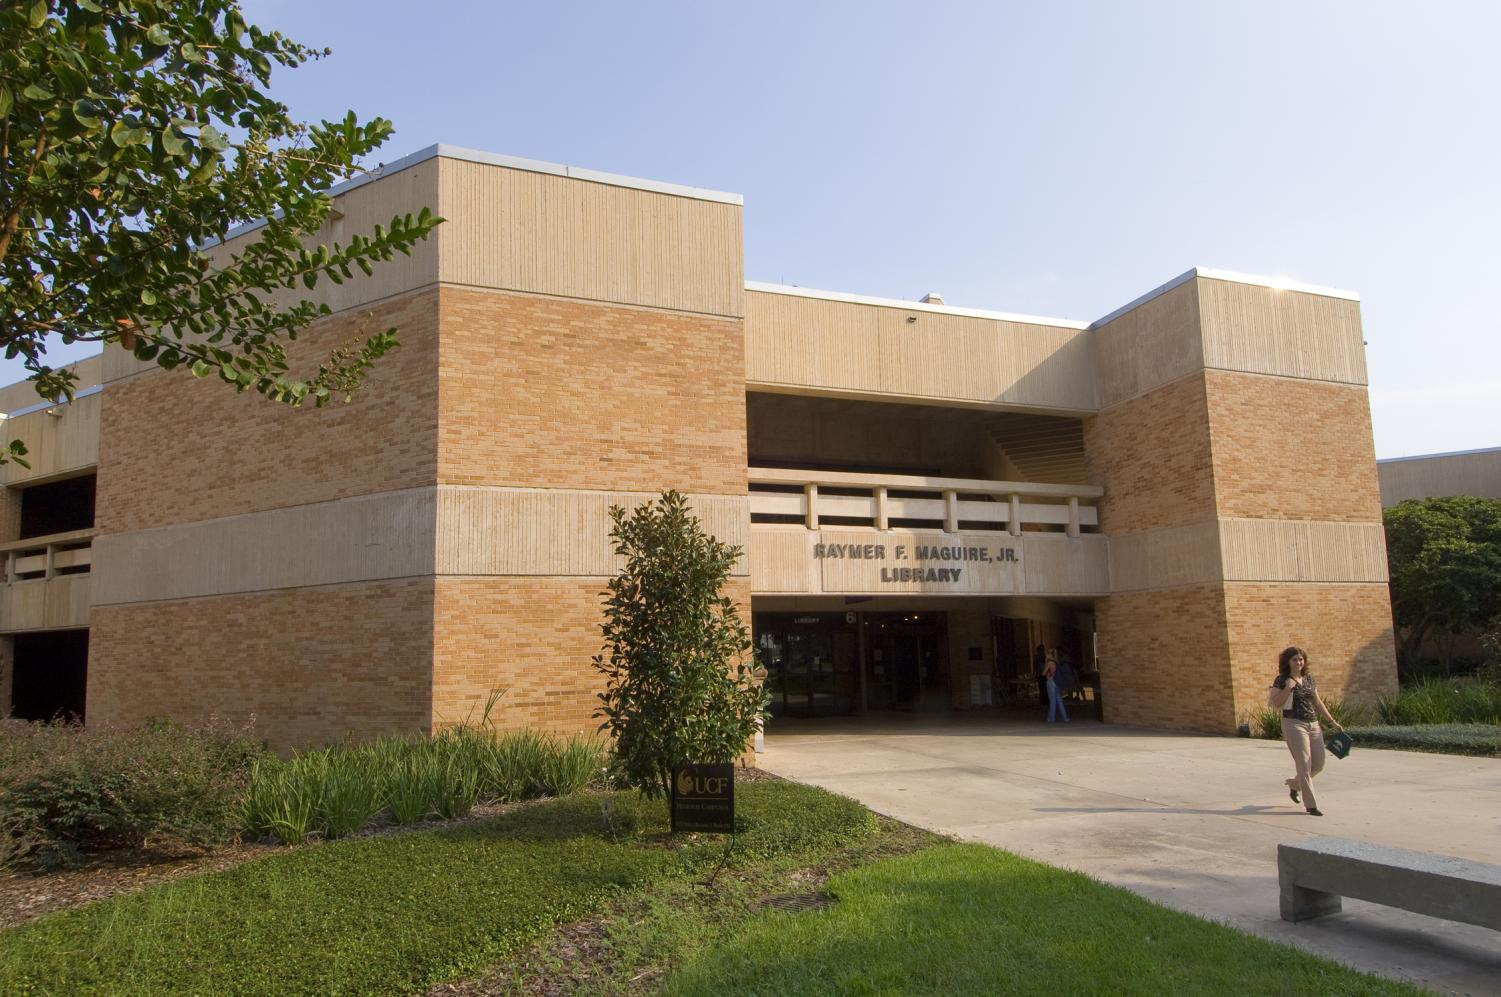 Valencia College West Campus' library, where Burke allegedly made threats to kill a woman.